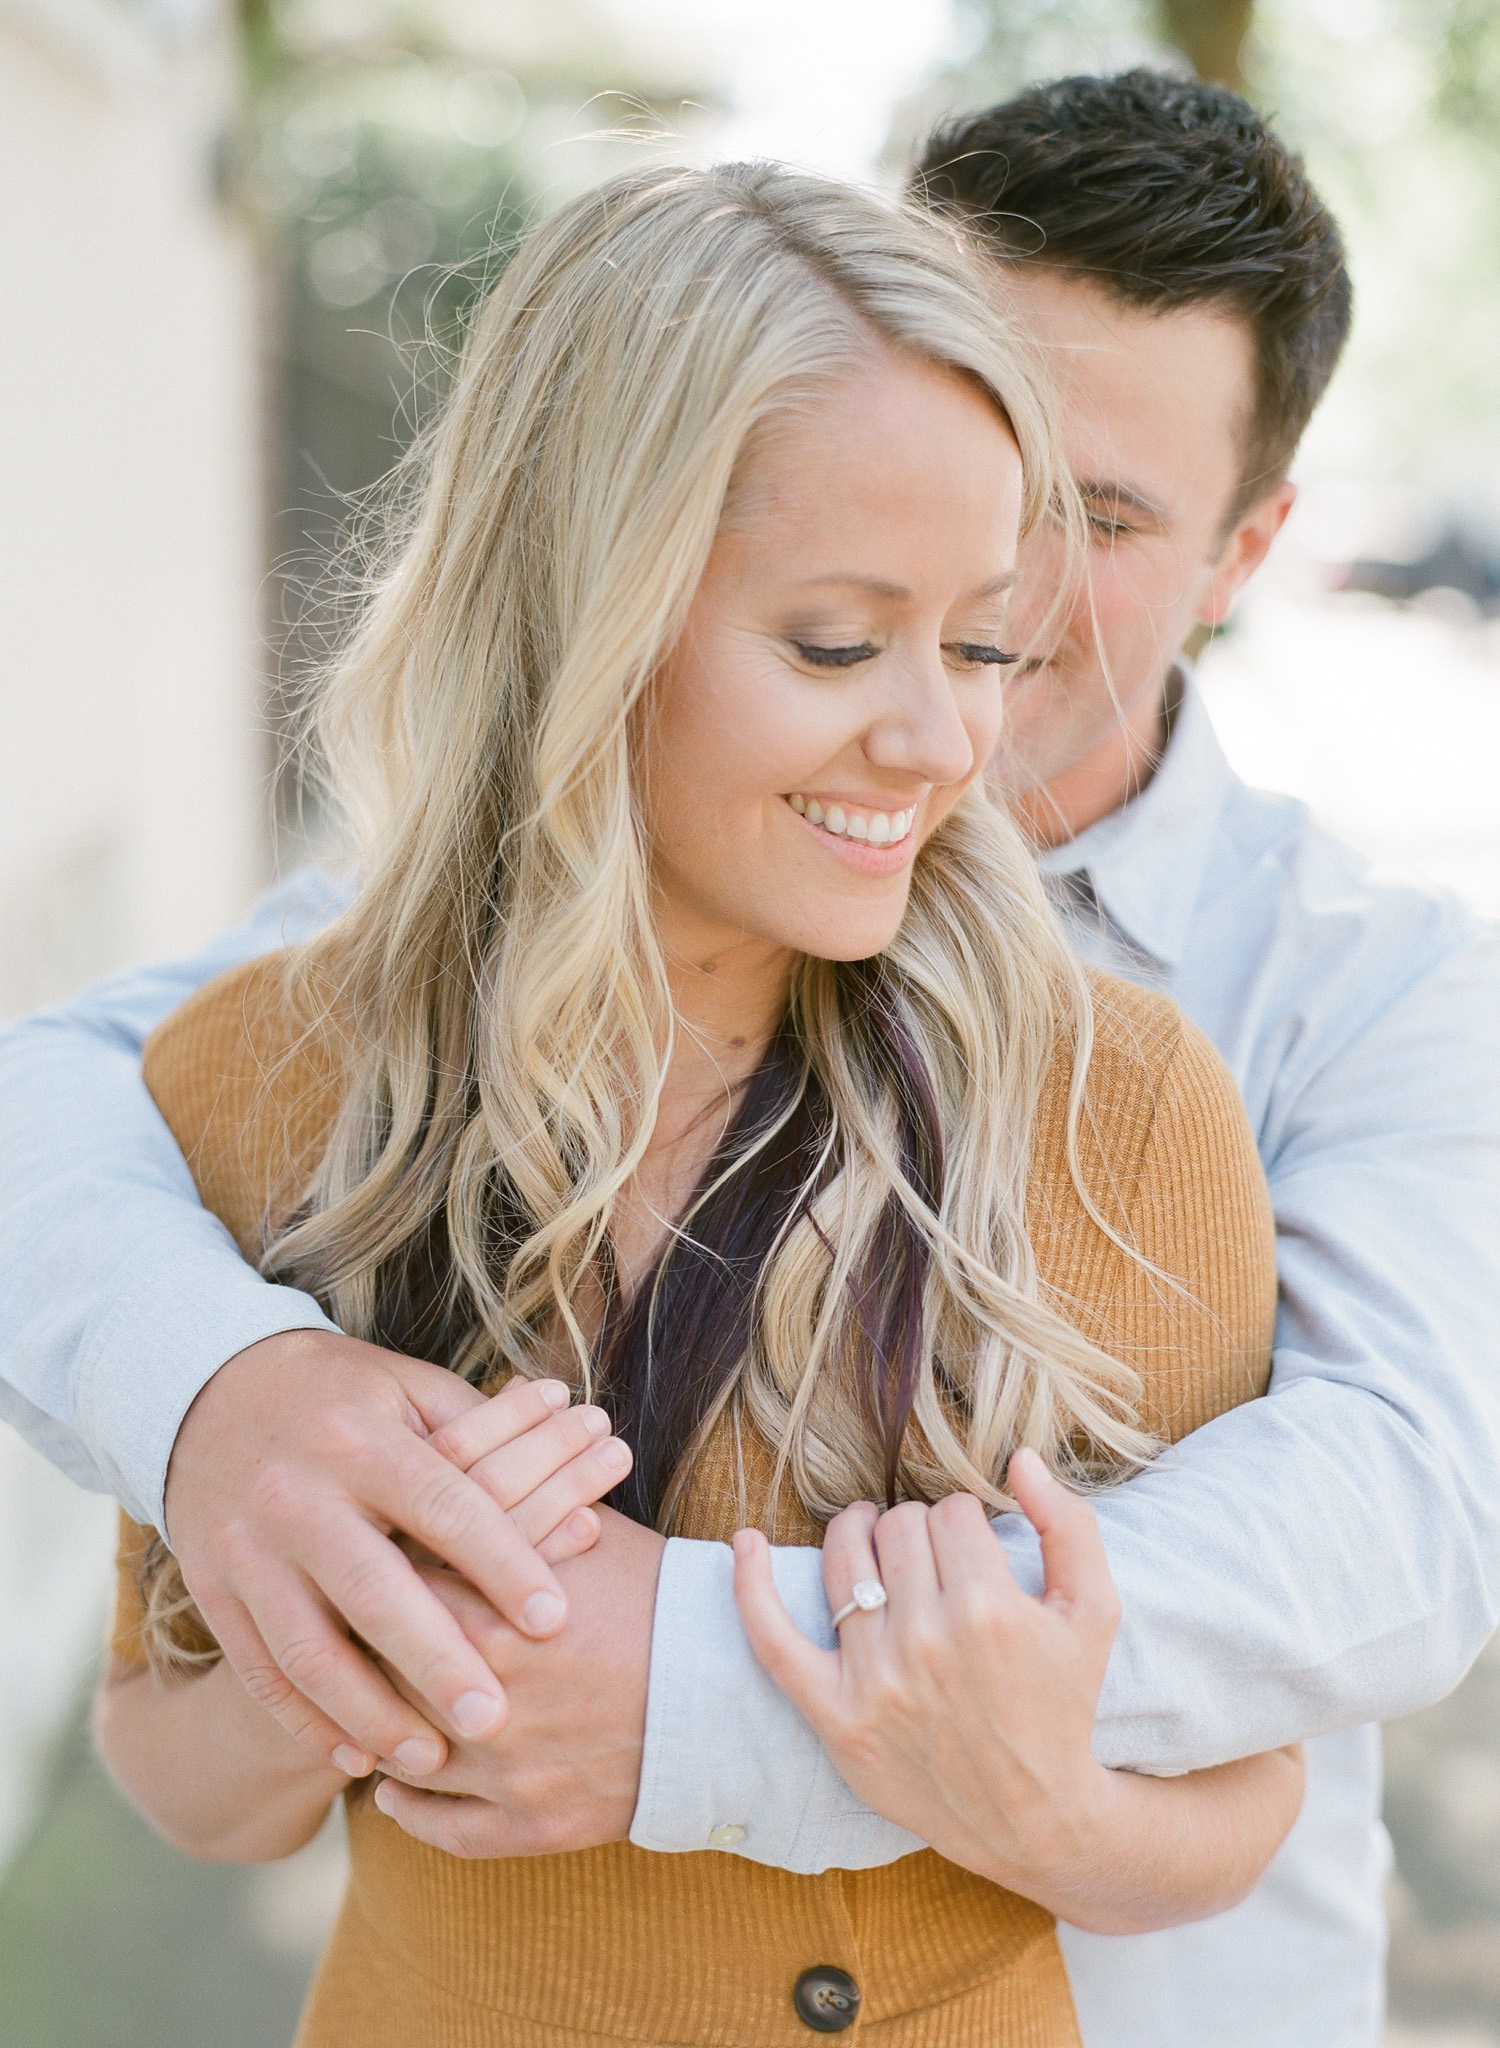 Charleston-Engagement-Photographer-30.jpg